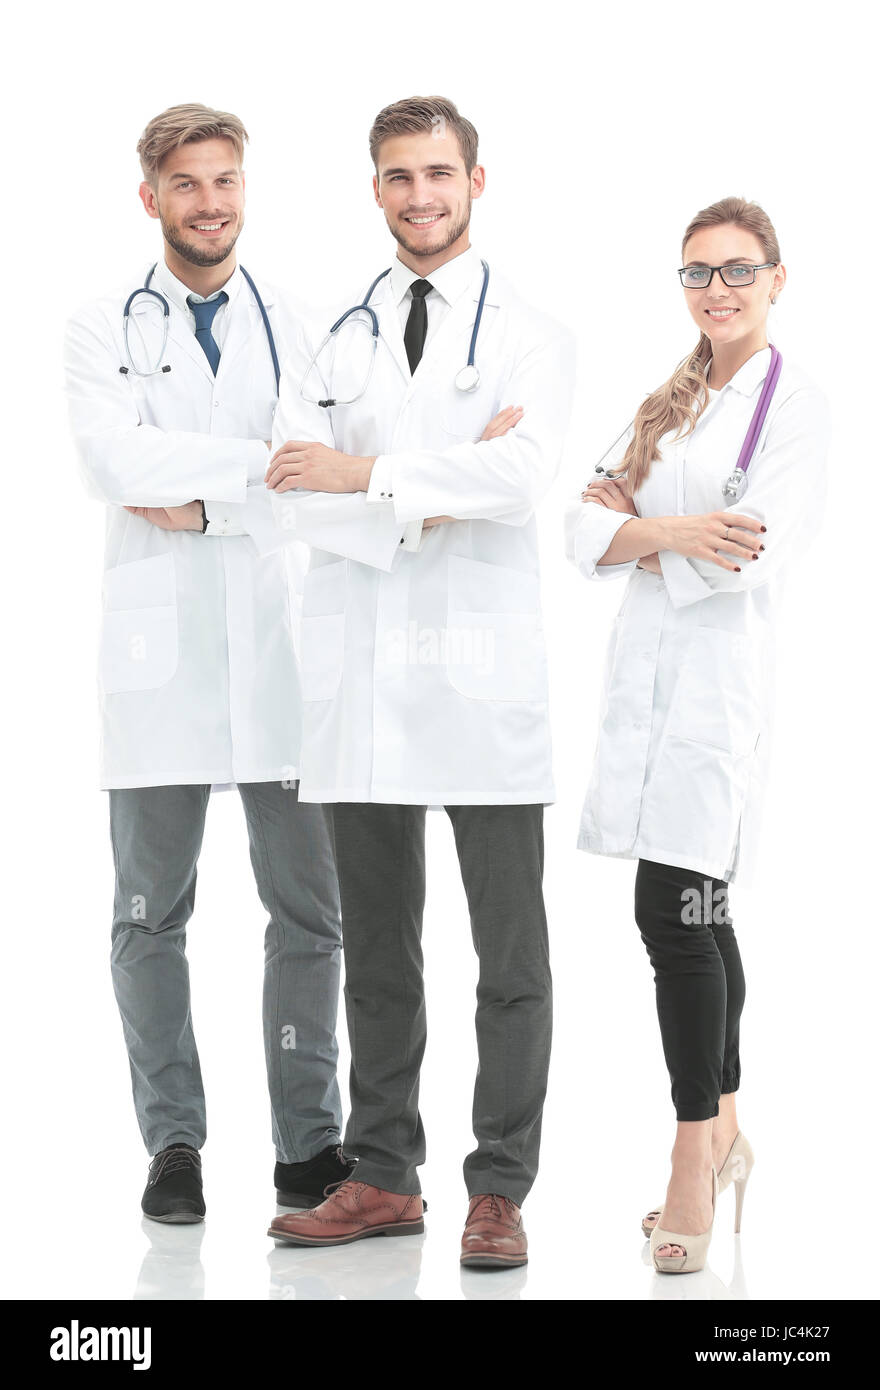 Portrait of group of smiling hospital colleagues standing togeth - Stock Image